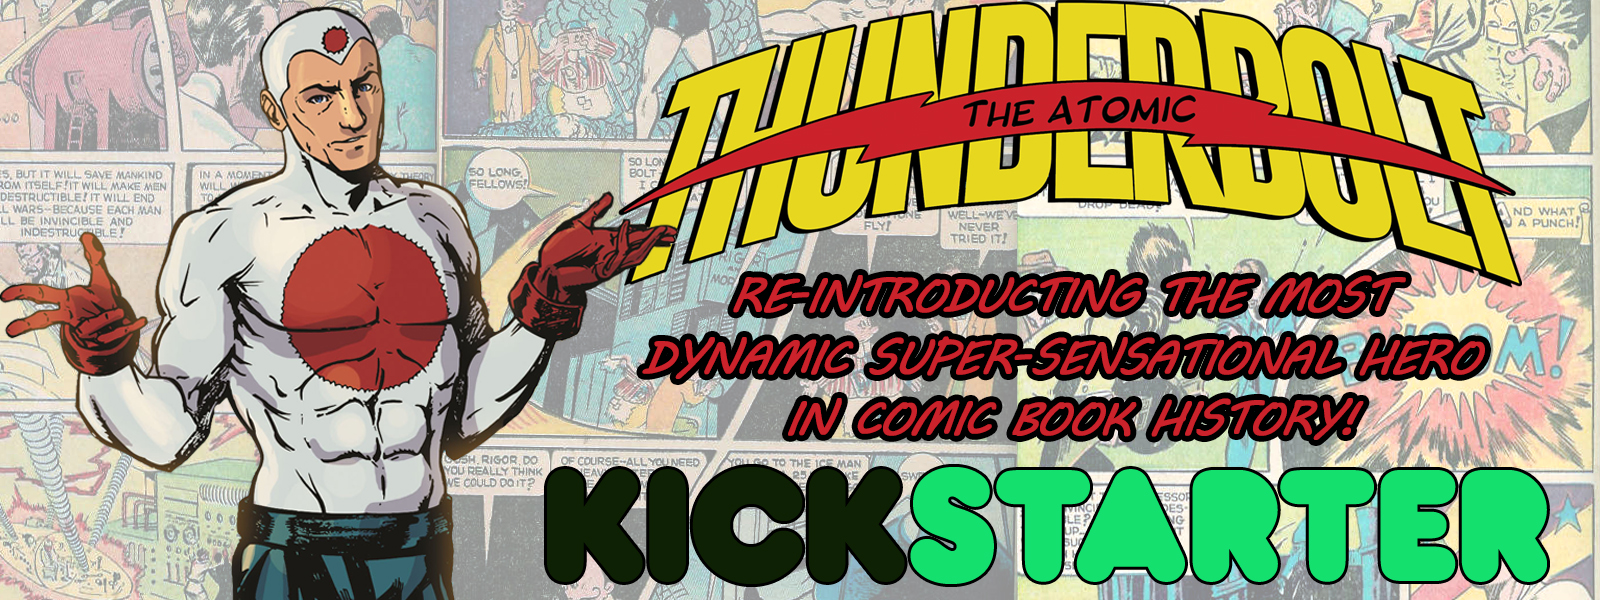 Atomic Thunderbolt on Kickstarter